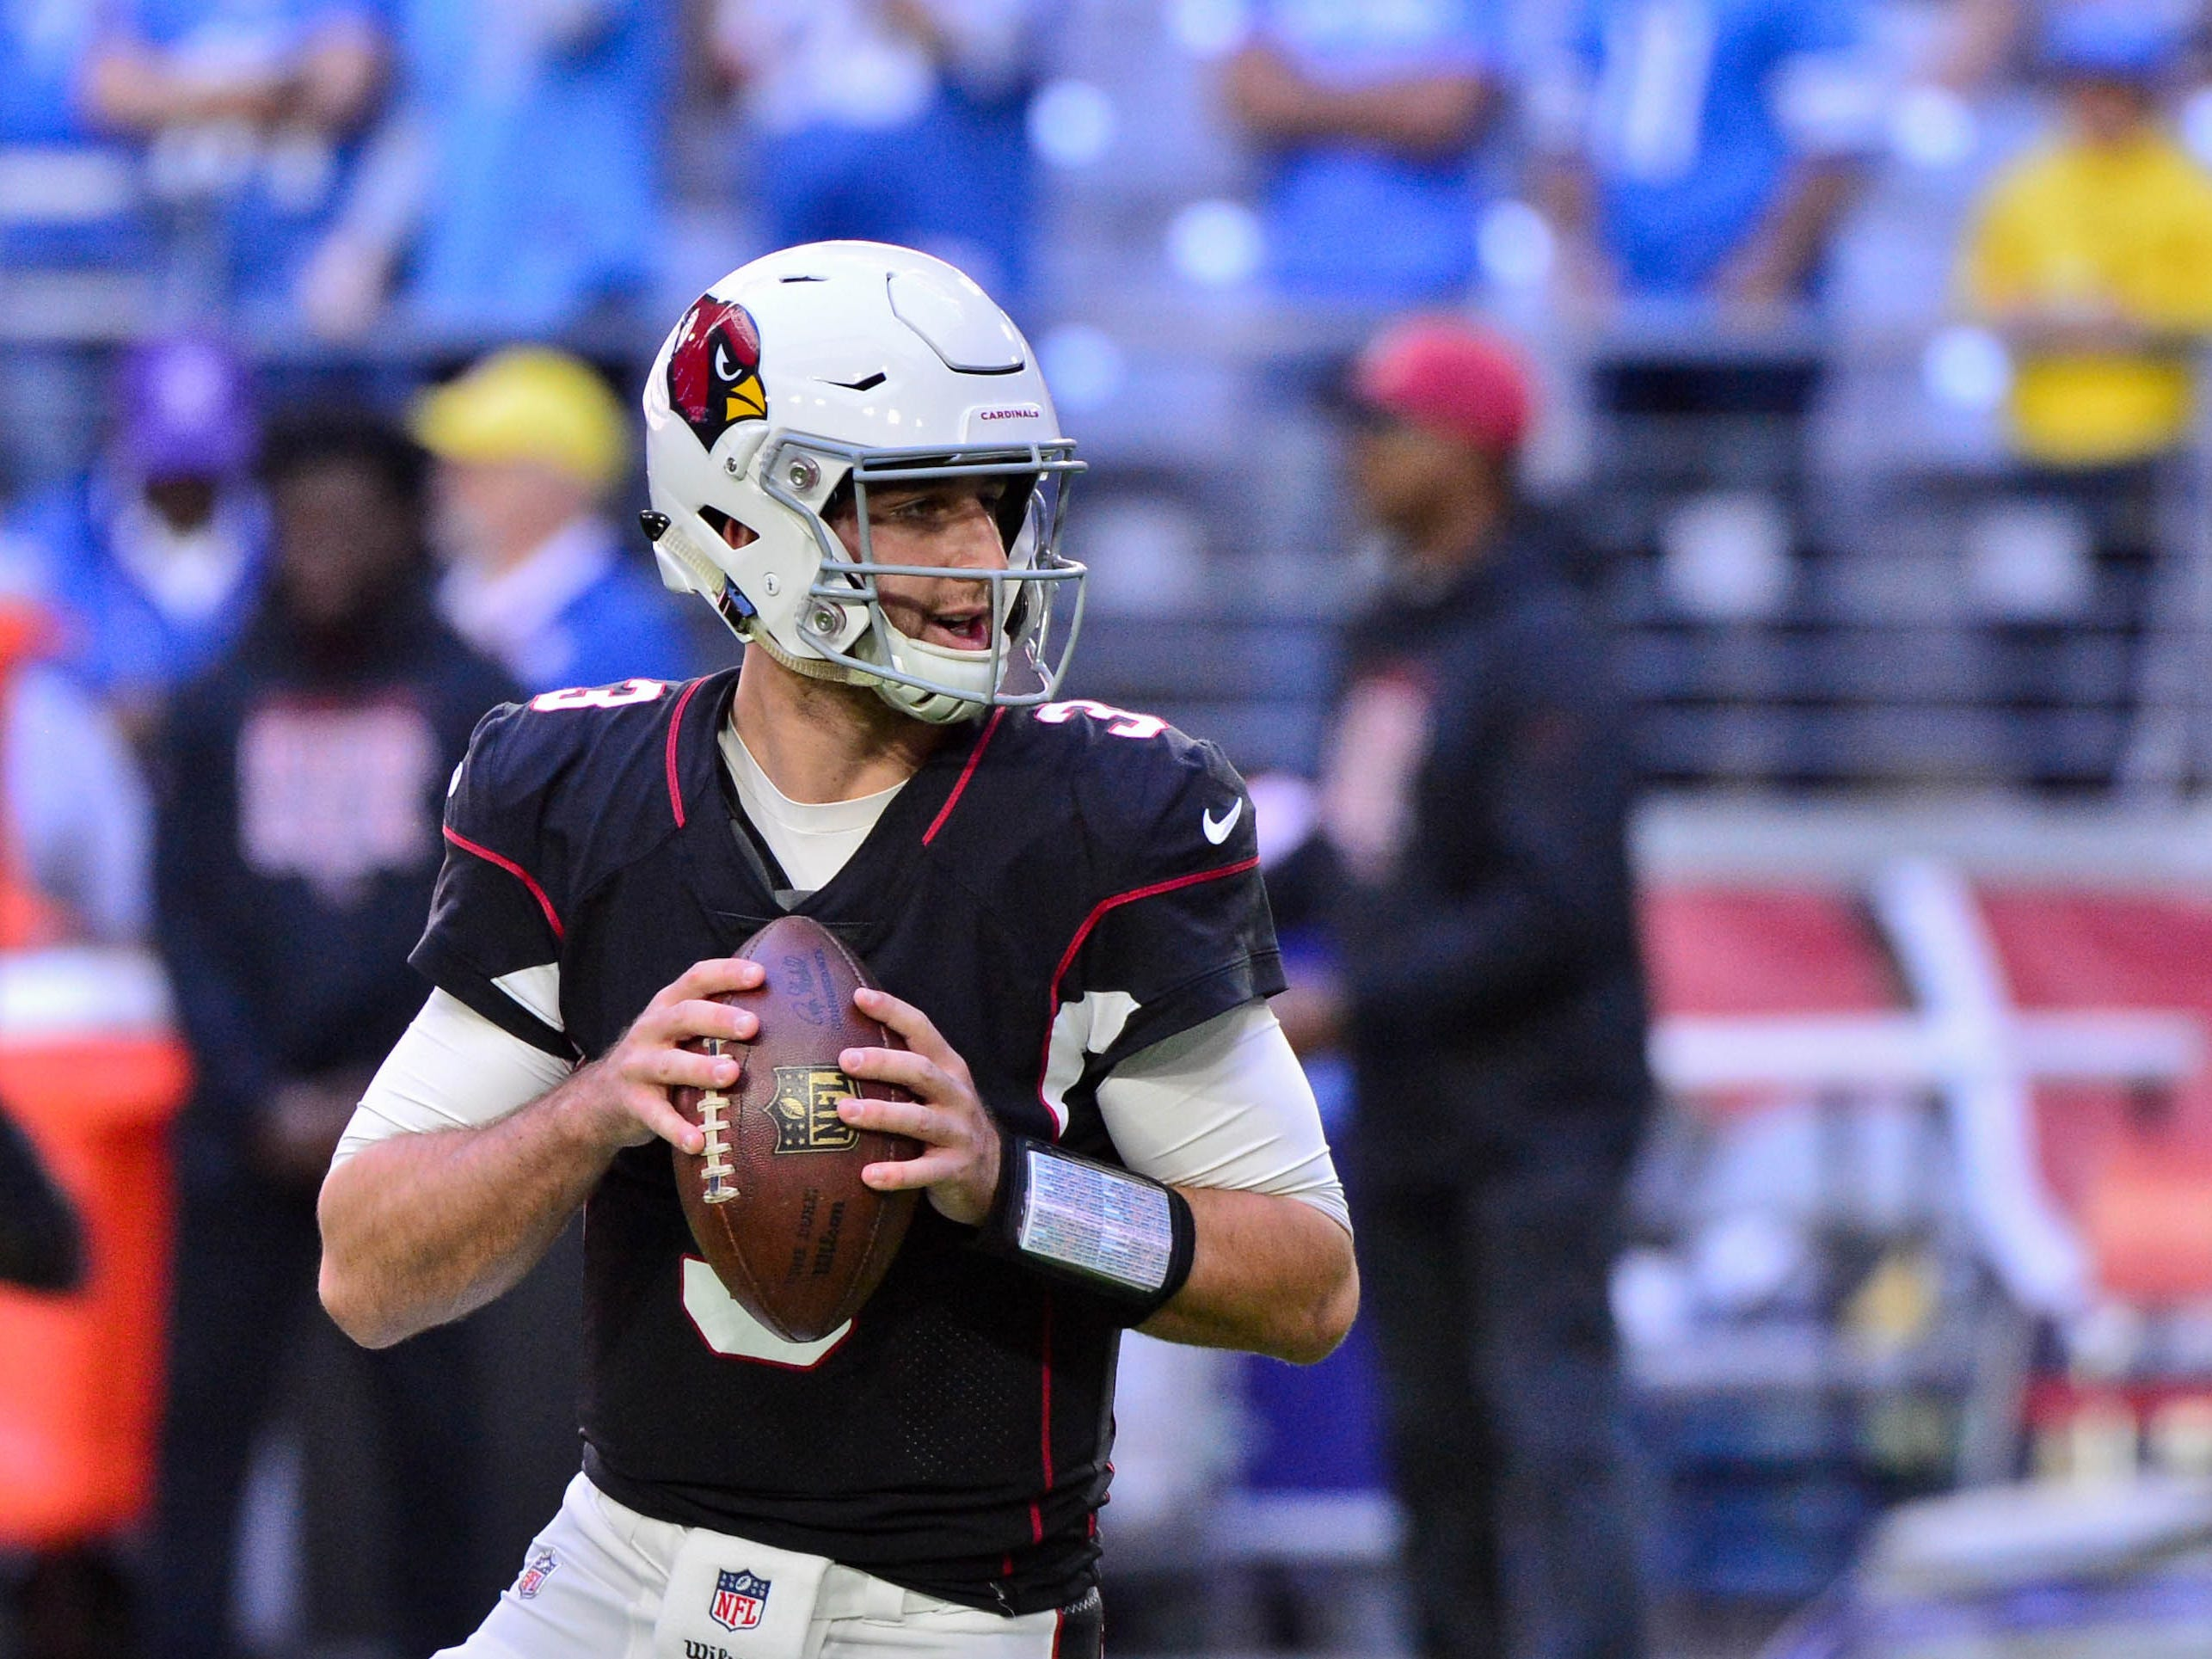 Dec 9, 2018; Glendale, AZ, USA; Arizona Cardinals quarterback Josh Rosen (3) warms up prior to the game against the Detroit Lions at State Farm Stadium. Mandatory Credit: Matt Kartozian-USA TODAY Sports